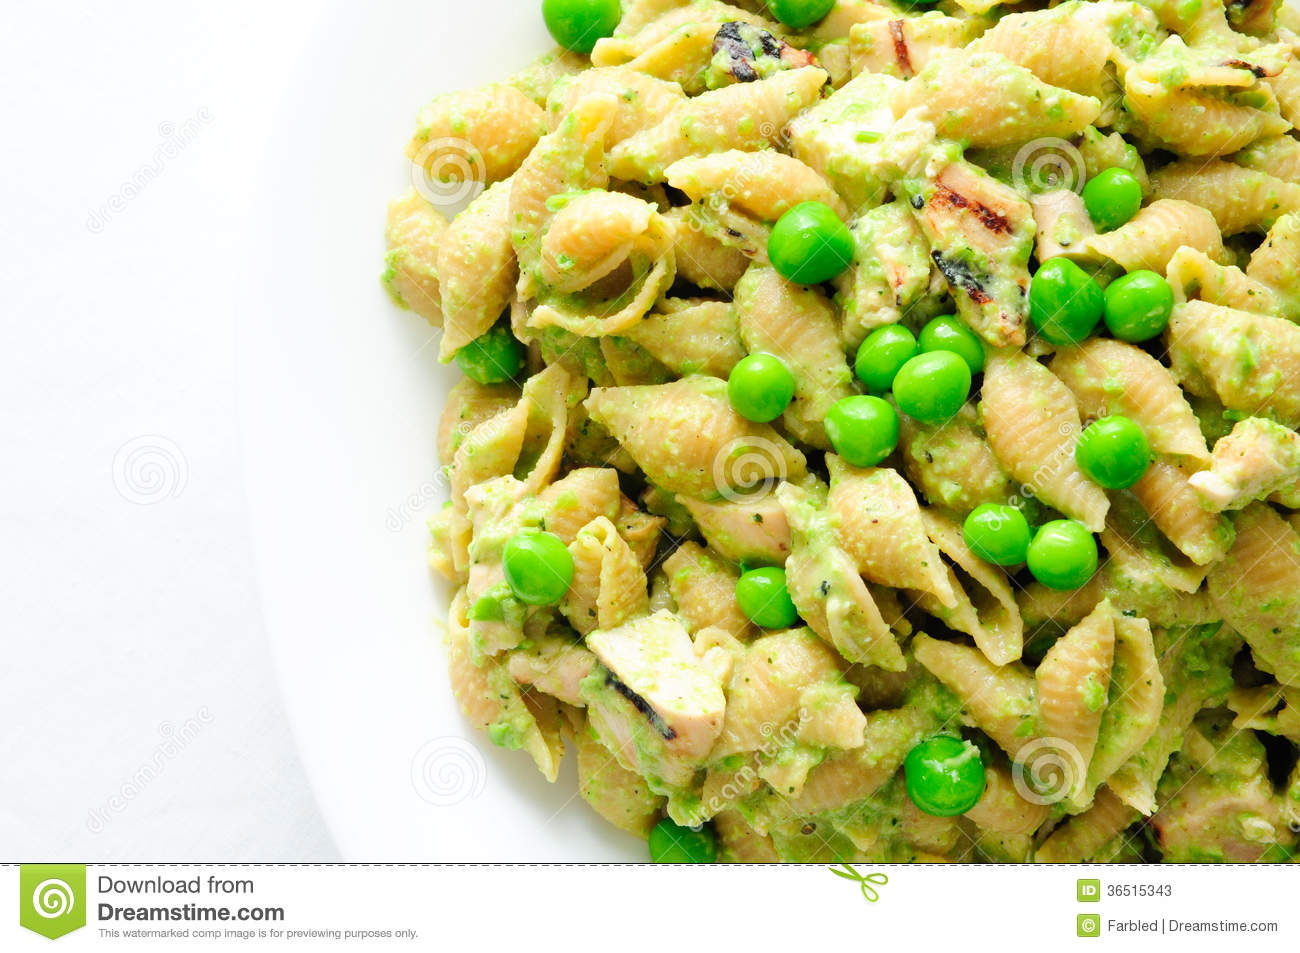 ... pesto pasta with chicken, basil and parmesan cheese and sweet peas